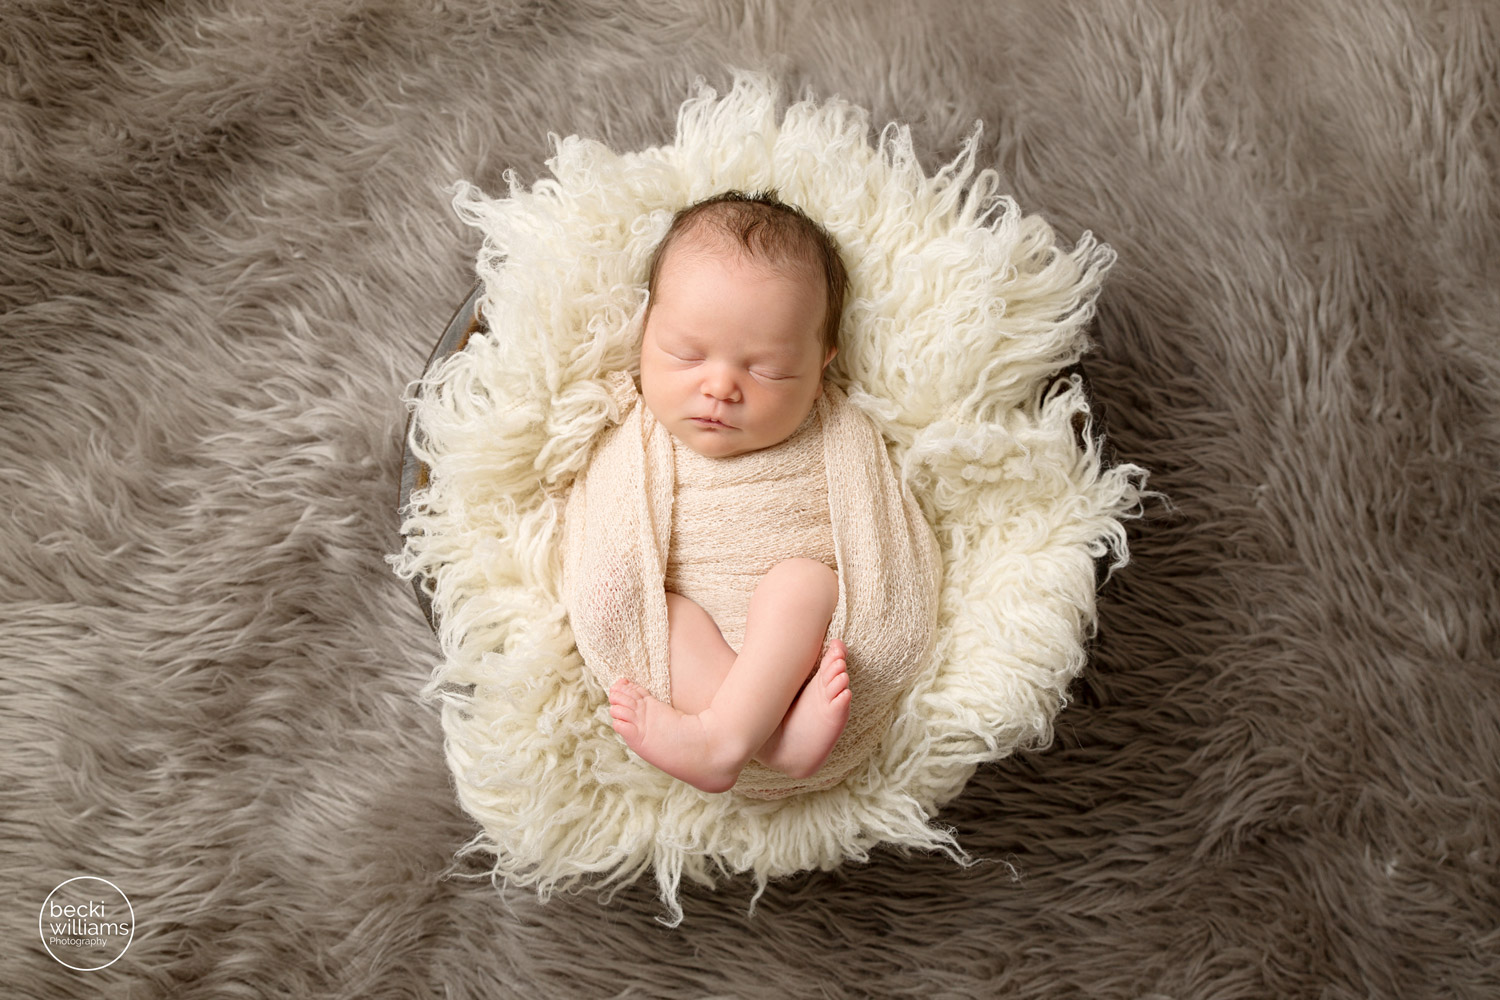 newborn pictures st albans, wrapped baby on fur in bowl